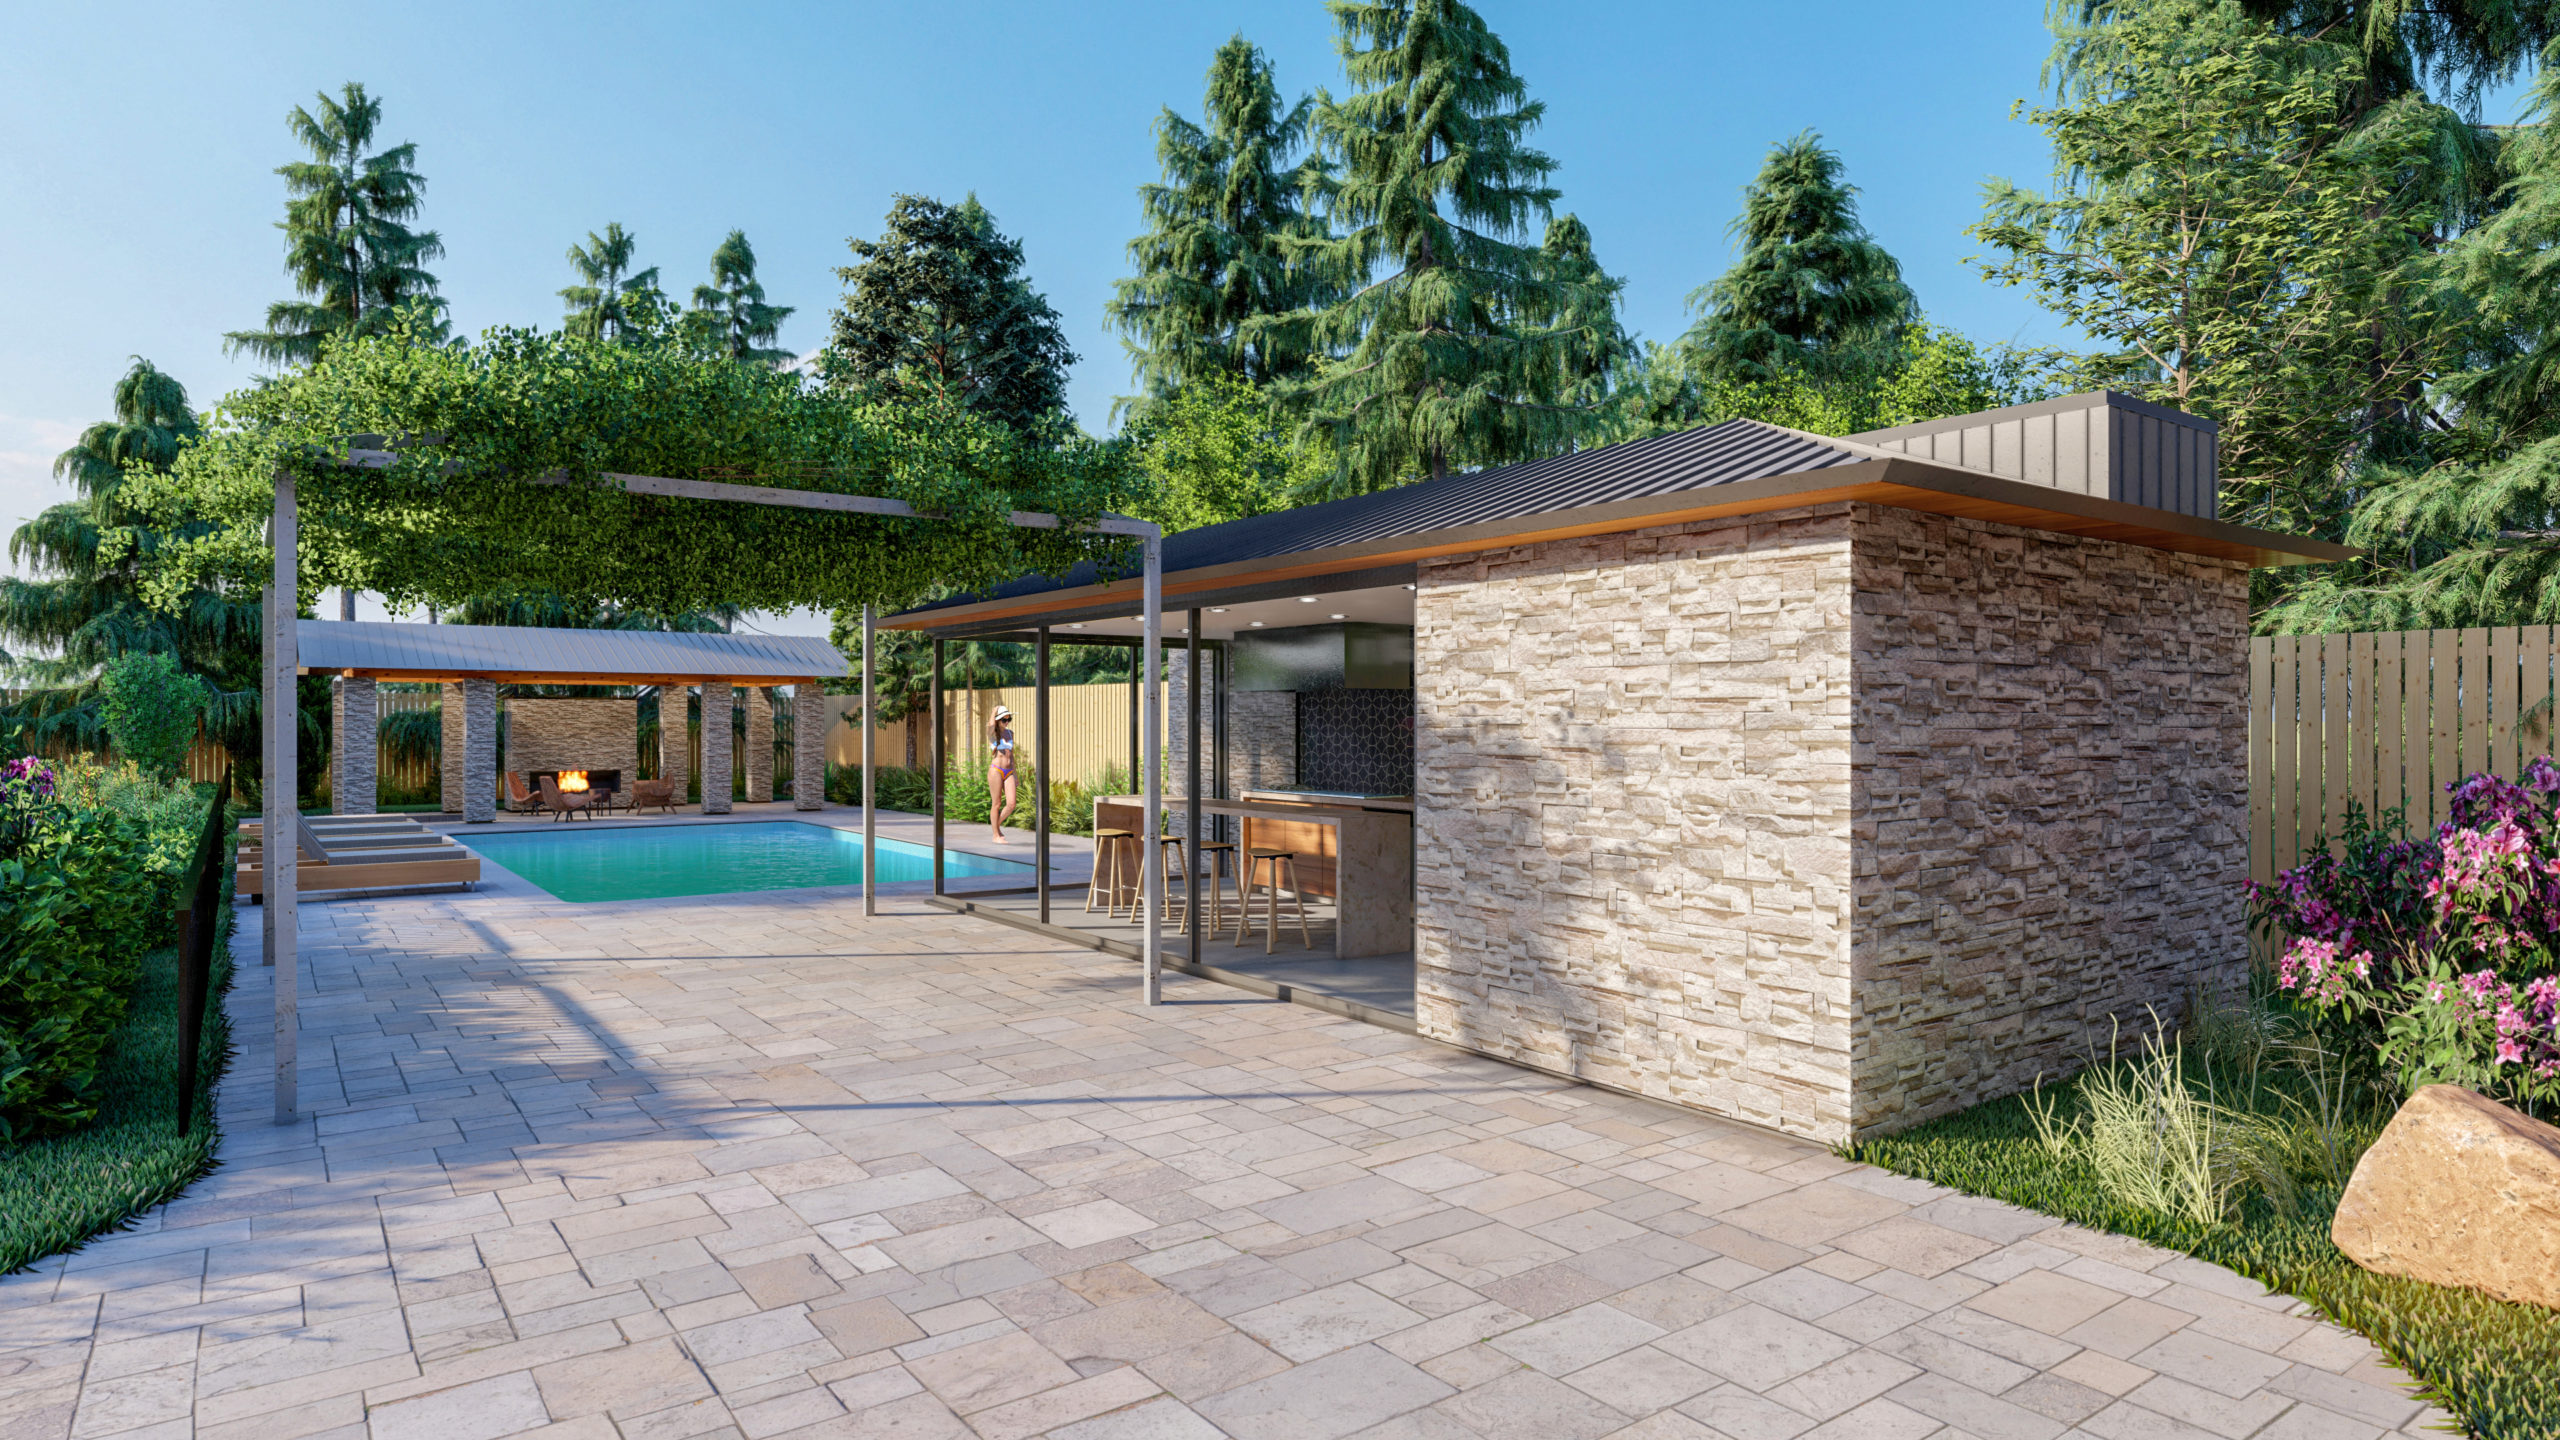 Pool House - Exterior Perspective